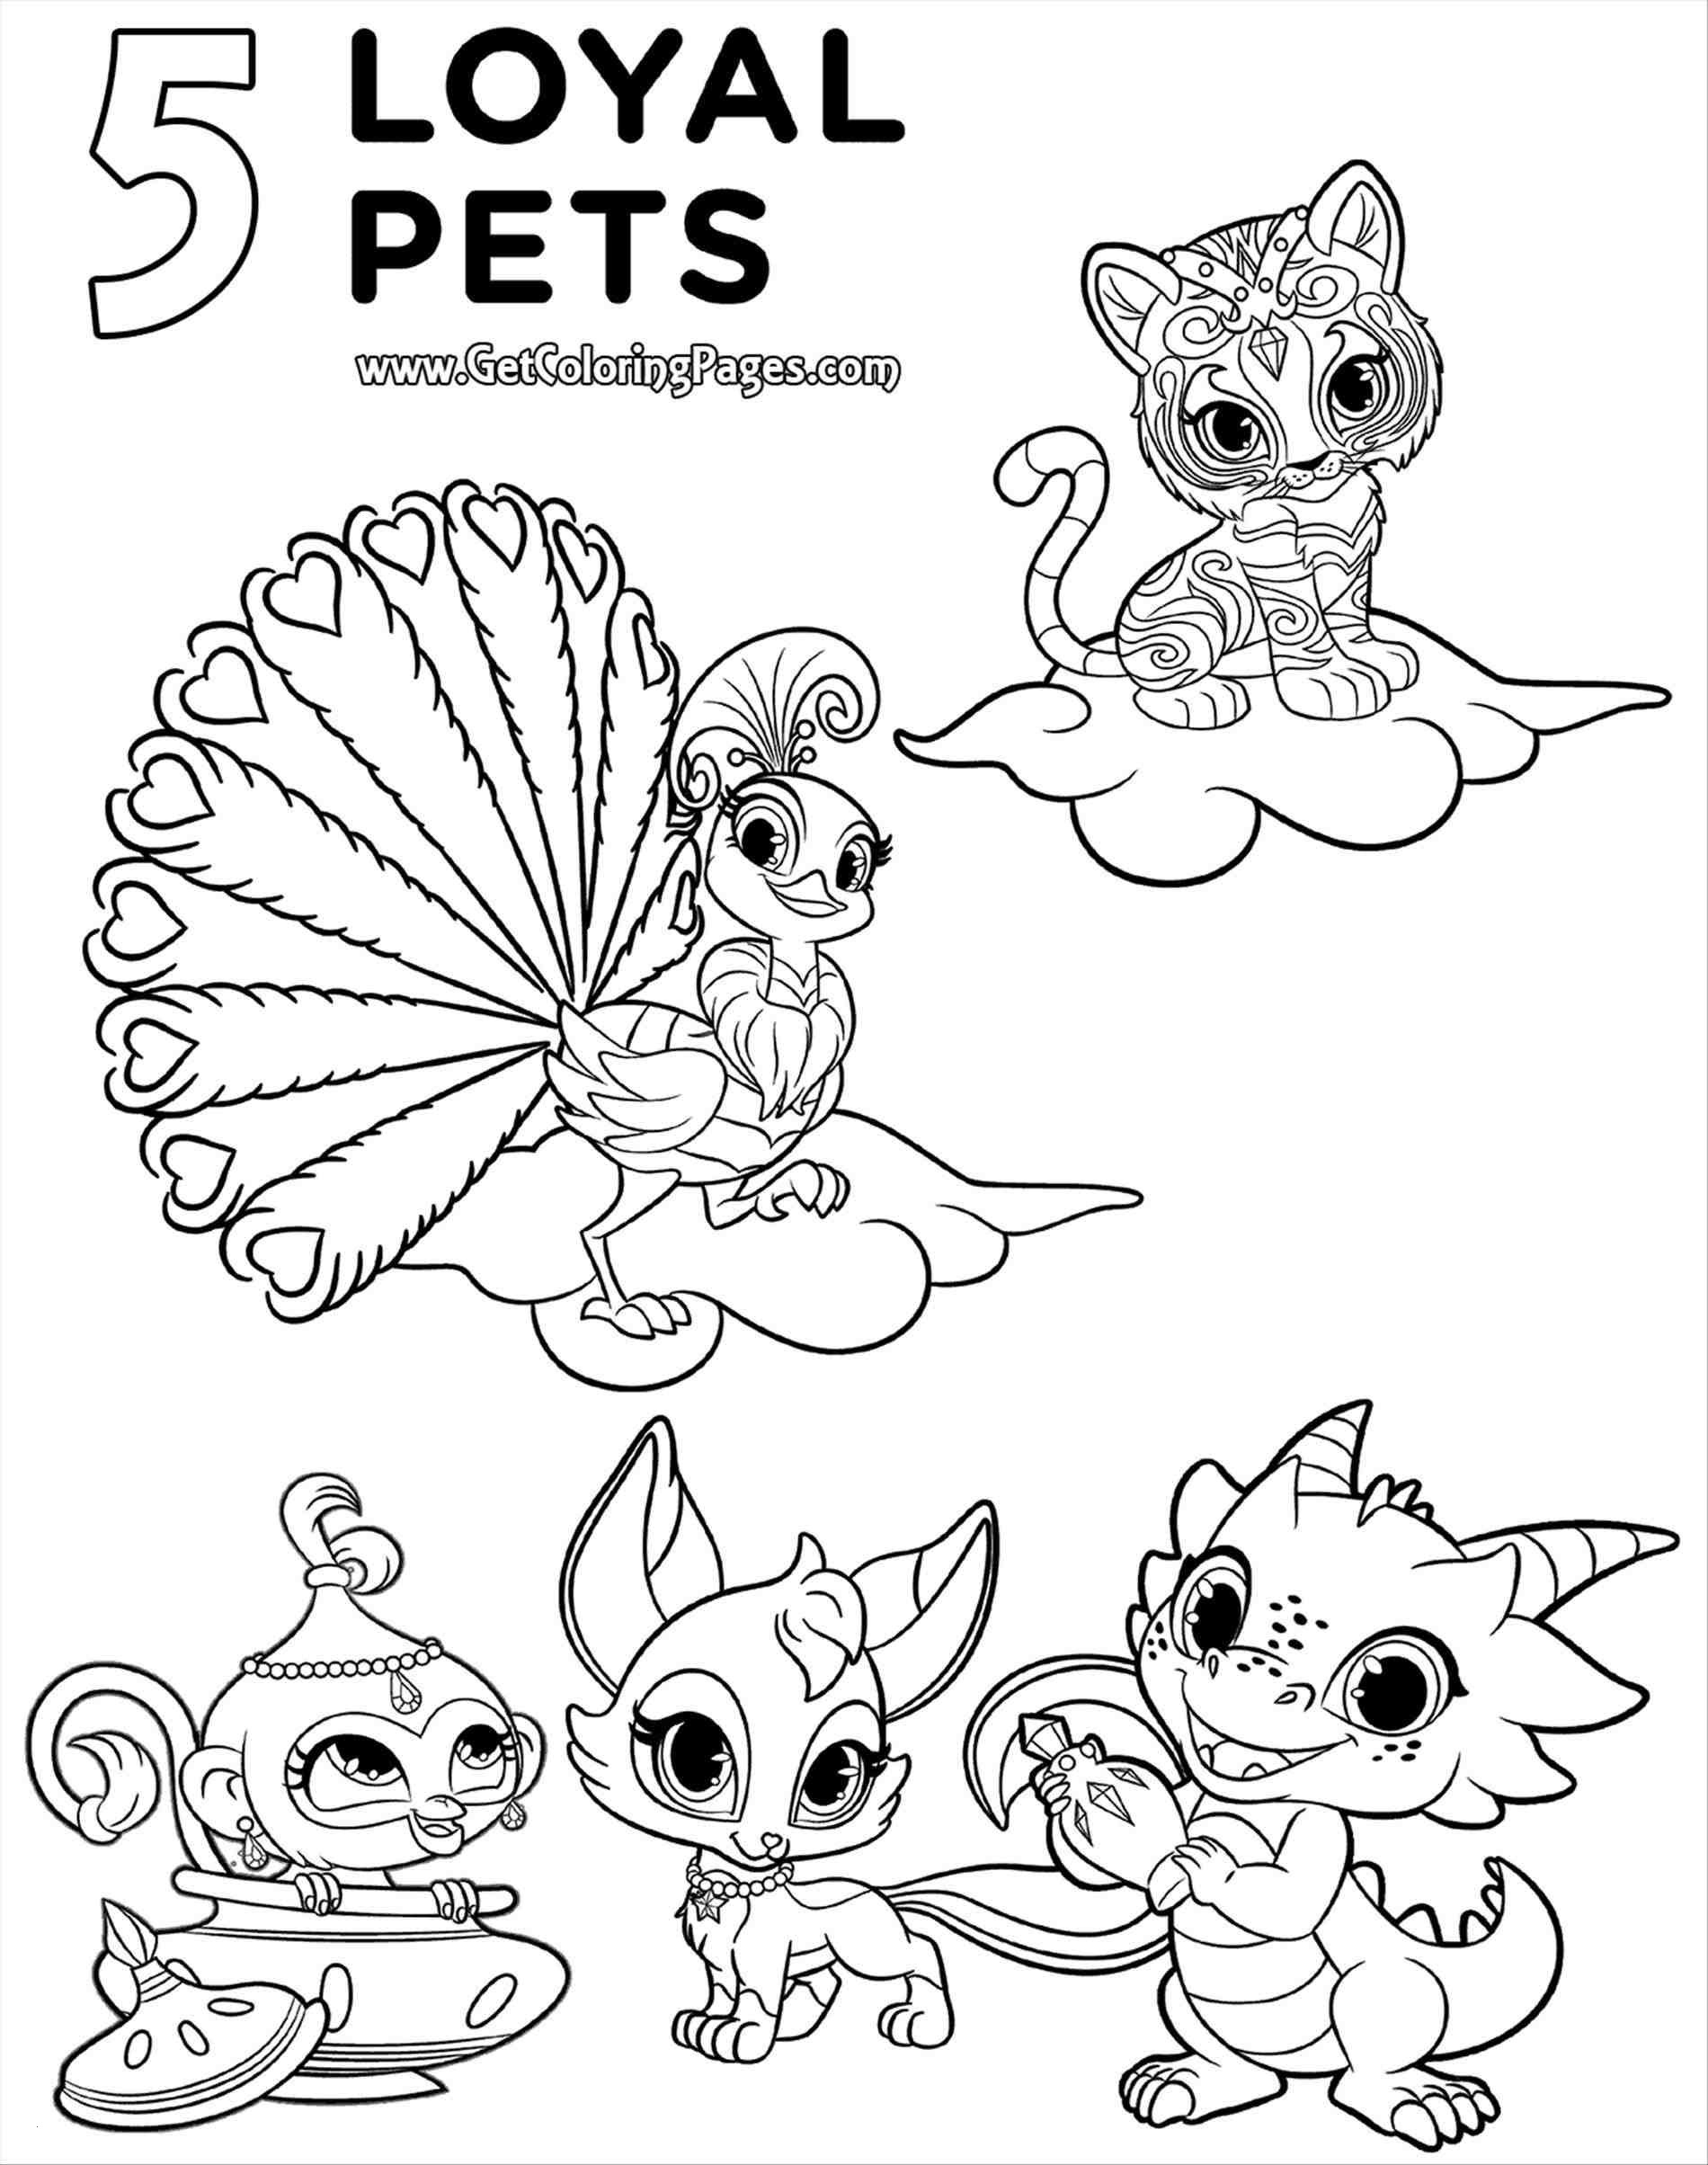 shimmer and shine coloring pages Collection-Shimmer and Shine Printable Coloring Pages 28 New Shimmer and Shine Coloring Page Cloud9vegas 15-q